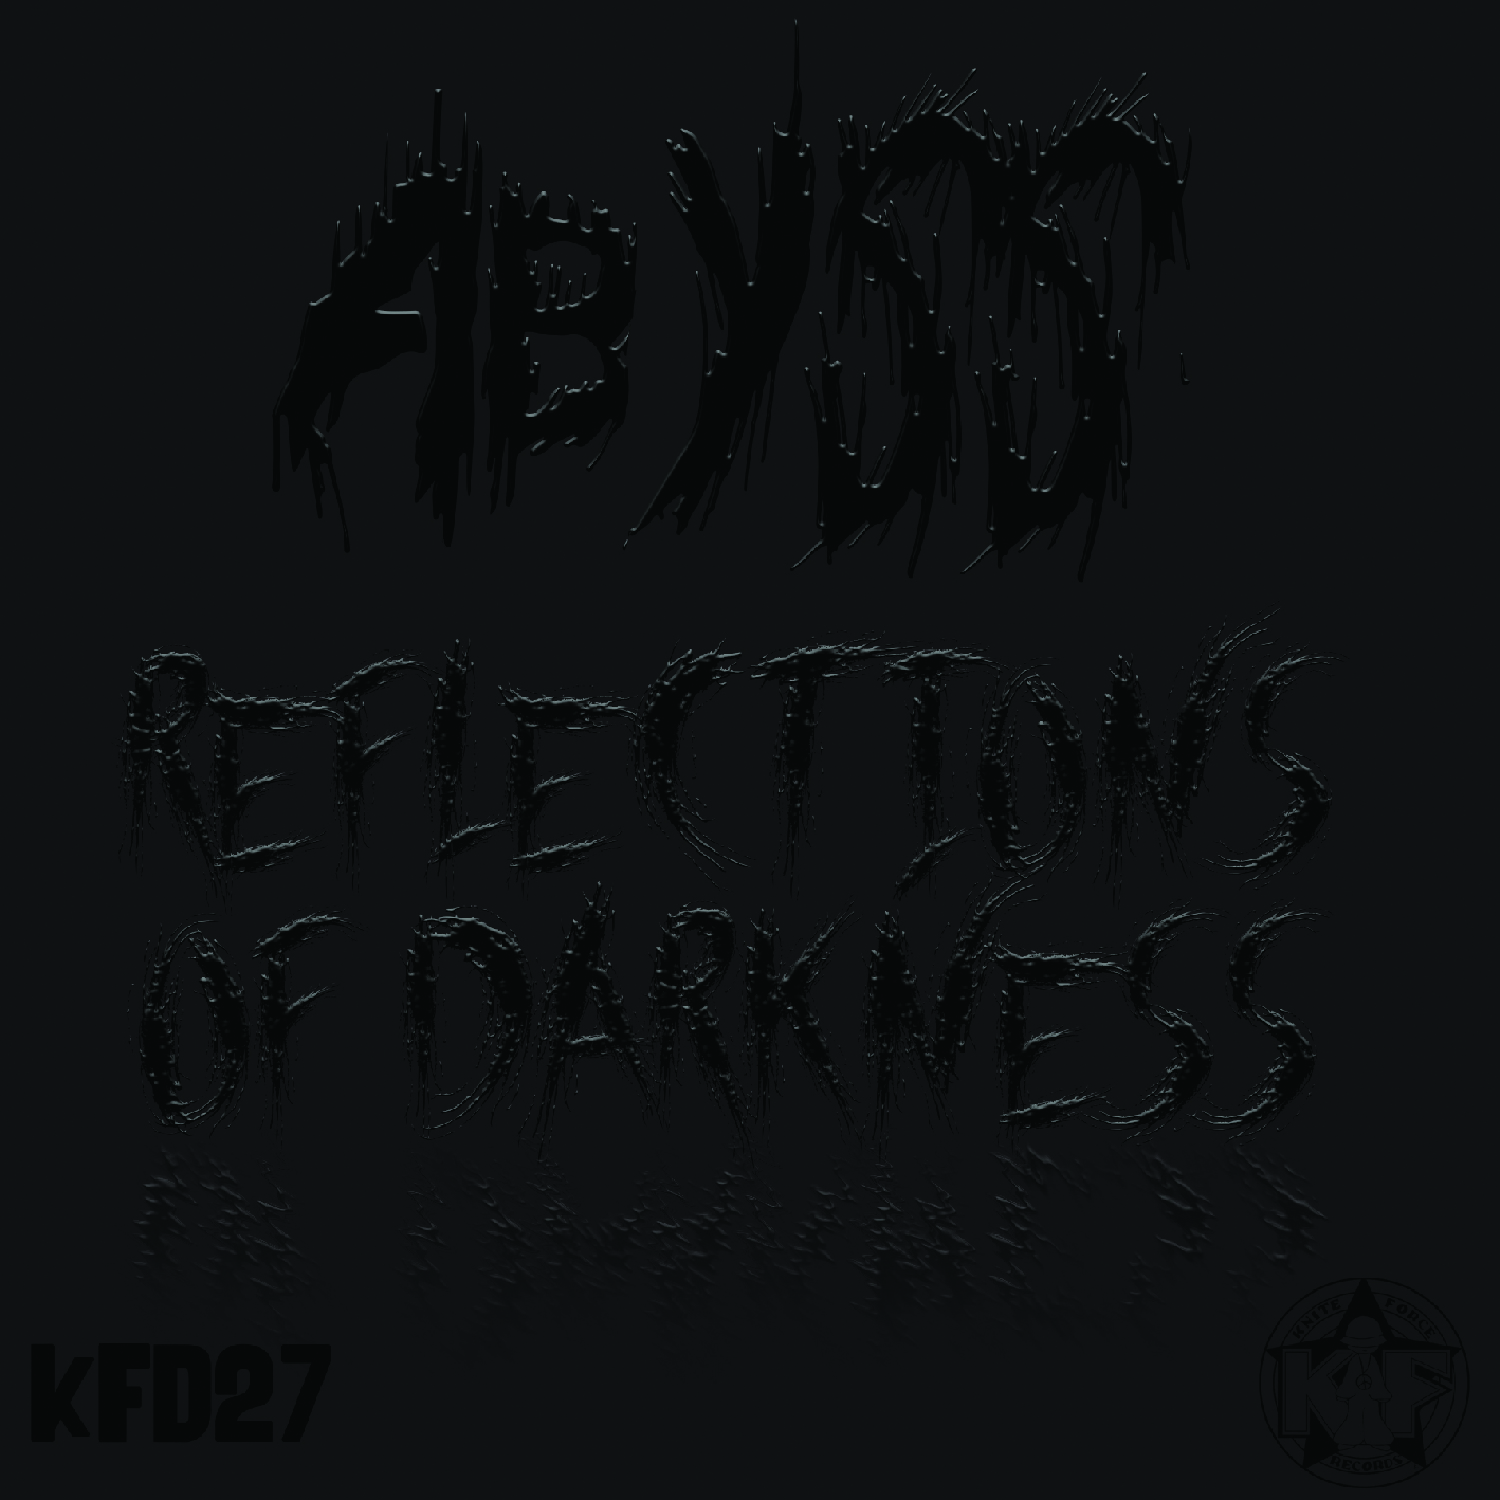 [KFD027] Abyss - Reflections Of Darkness EP (Digital Only)